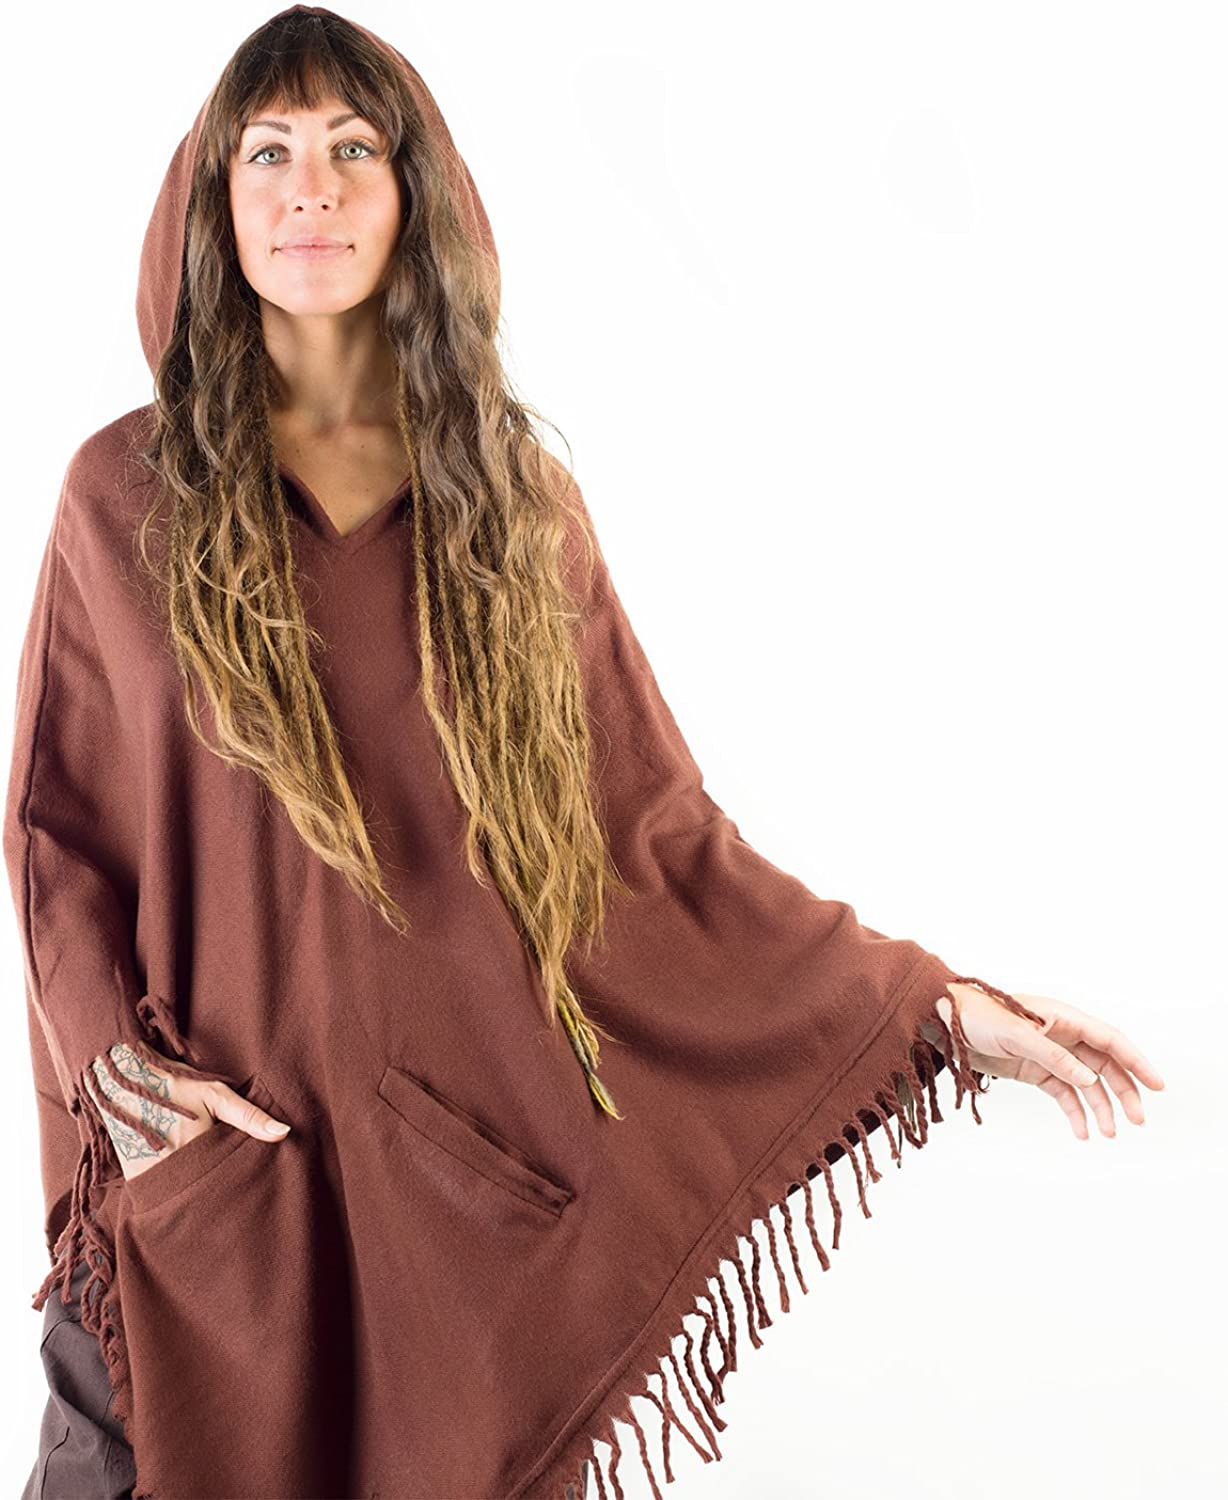 AJJAYA Womens Poncho Simply Brown Handmade Cashmere Wool with Large Hood and Pockets